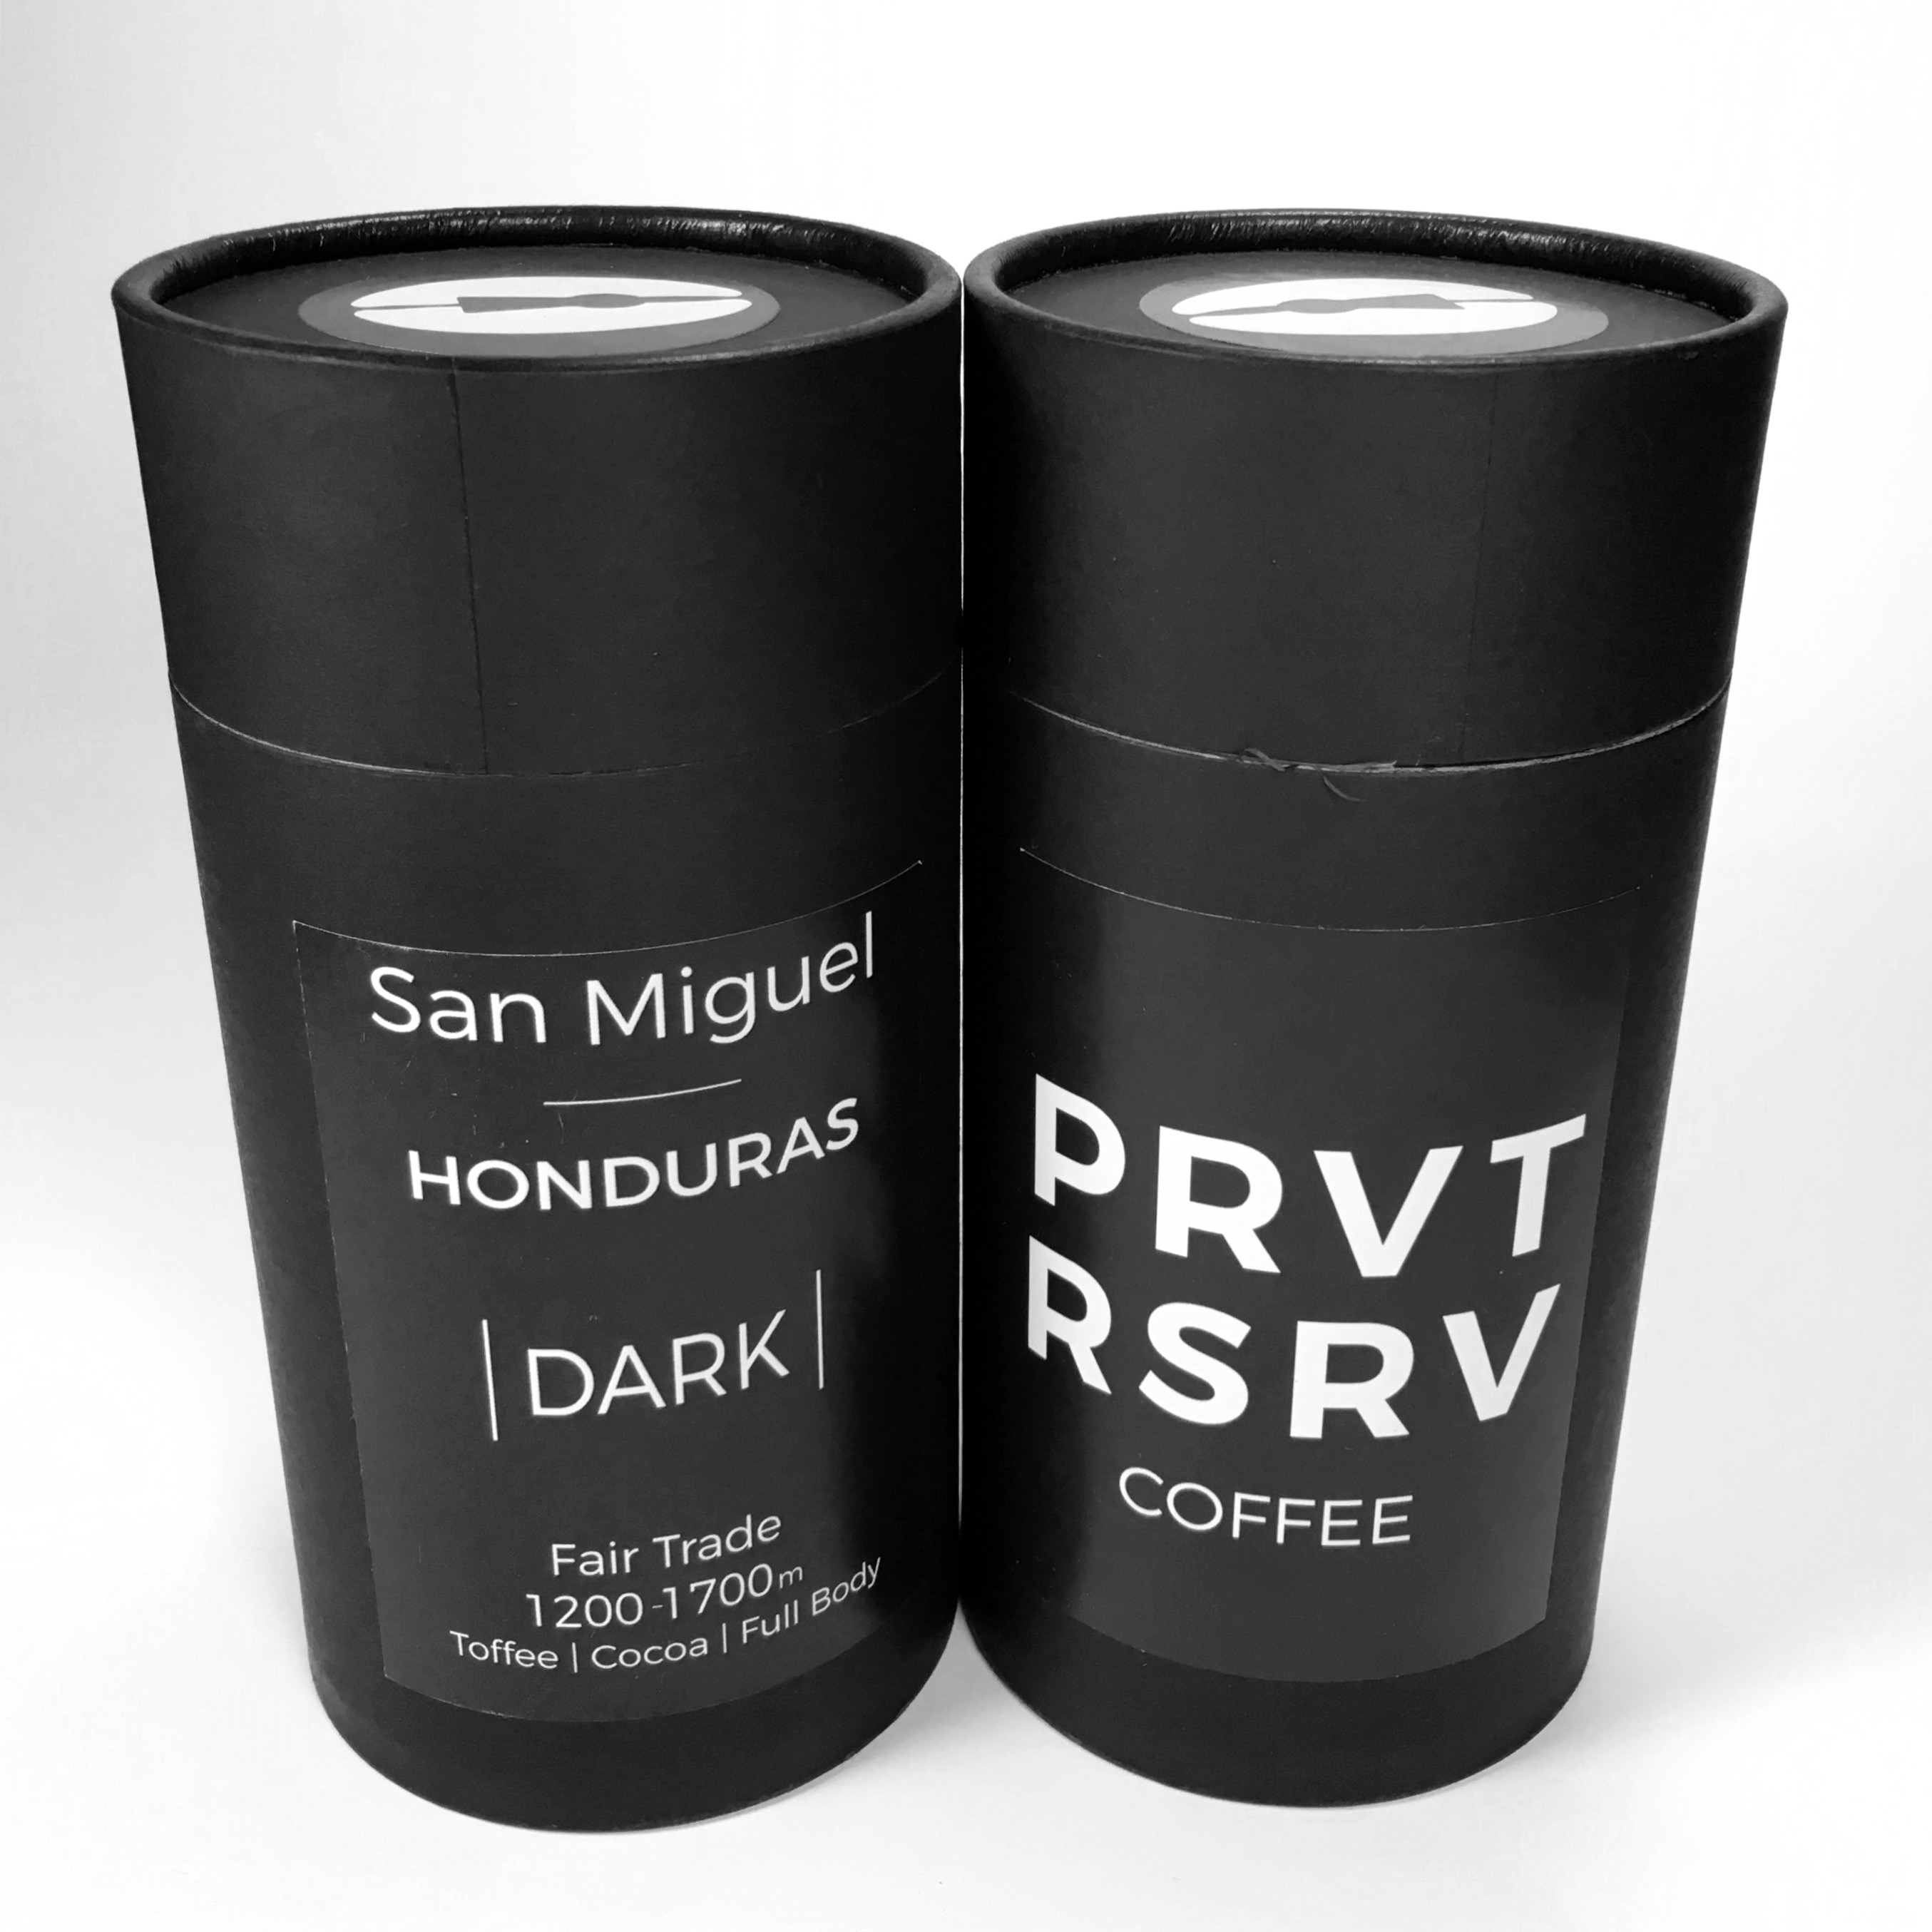 Private Reserve Coffee Honduras San Miguel Light and Dark